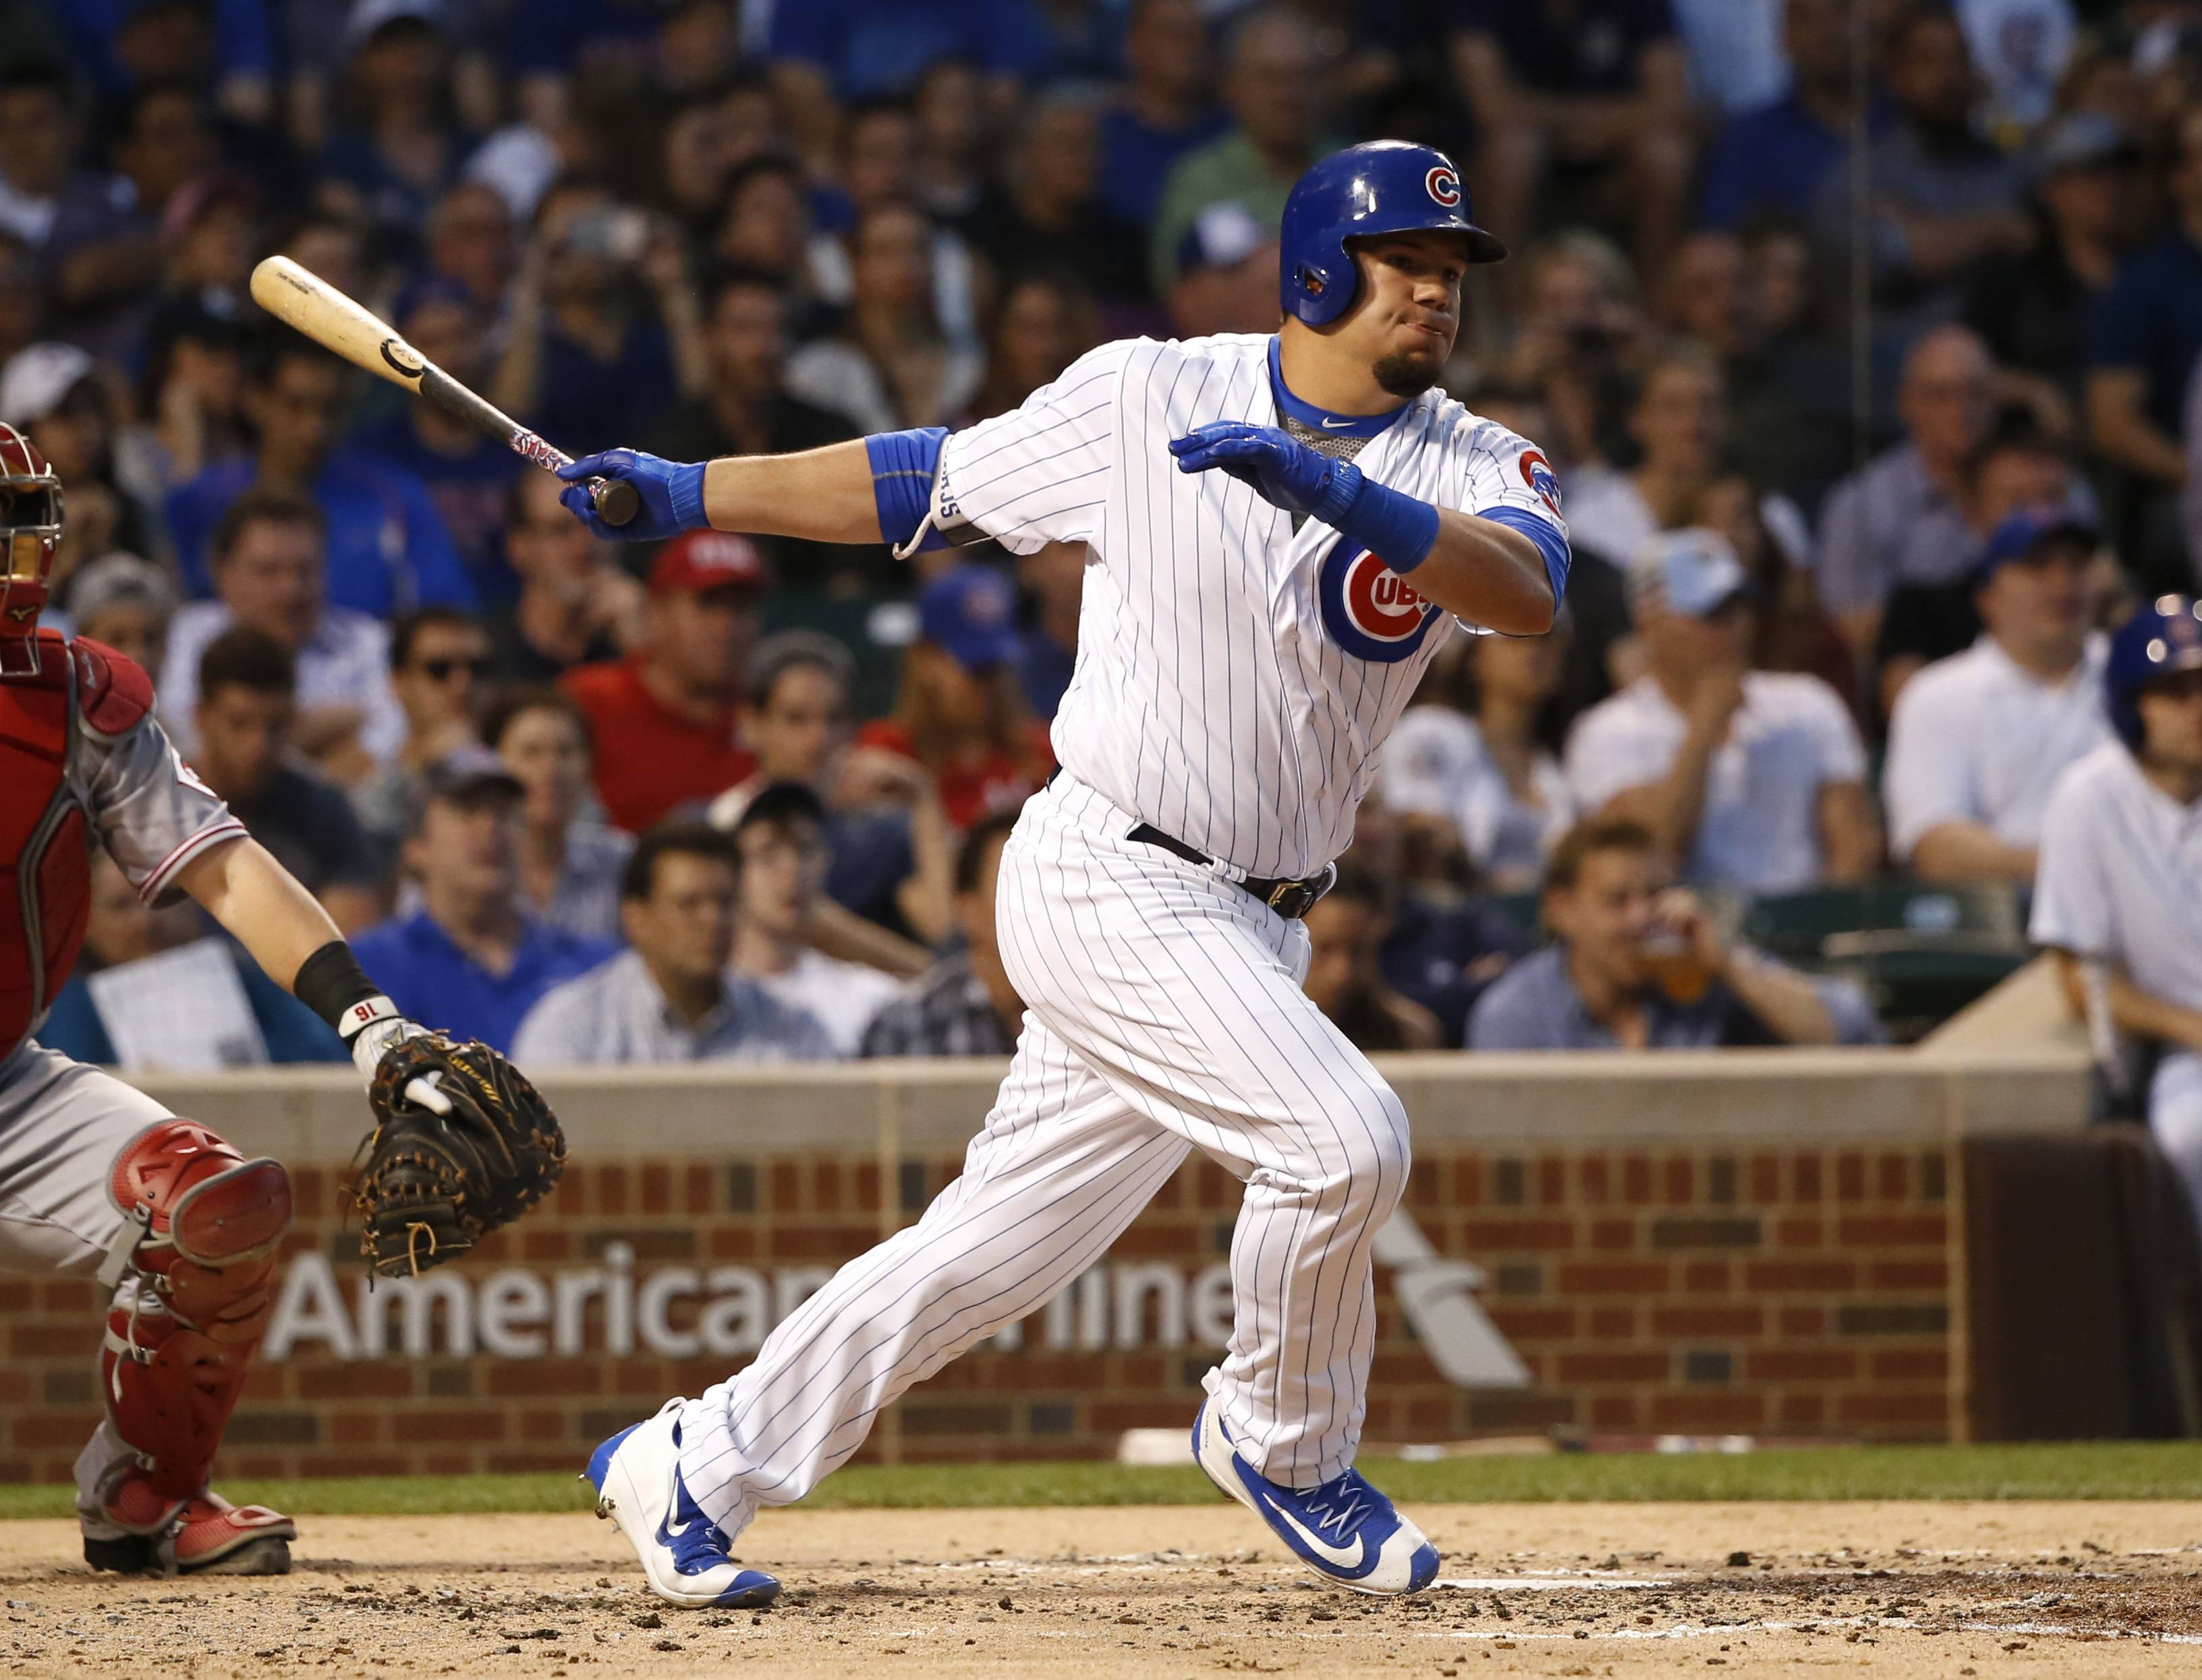 The Chicago Cubs drafted Kyle Schwarber with the fourth overall pick in the 2014 MLB draft. Schwarber is one of the last five first round picks by the Cubs to already be making an impact on the main roster.